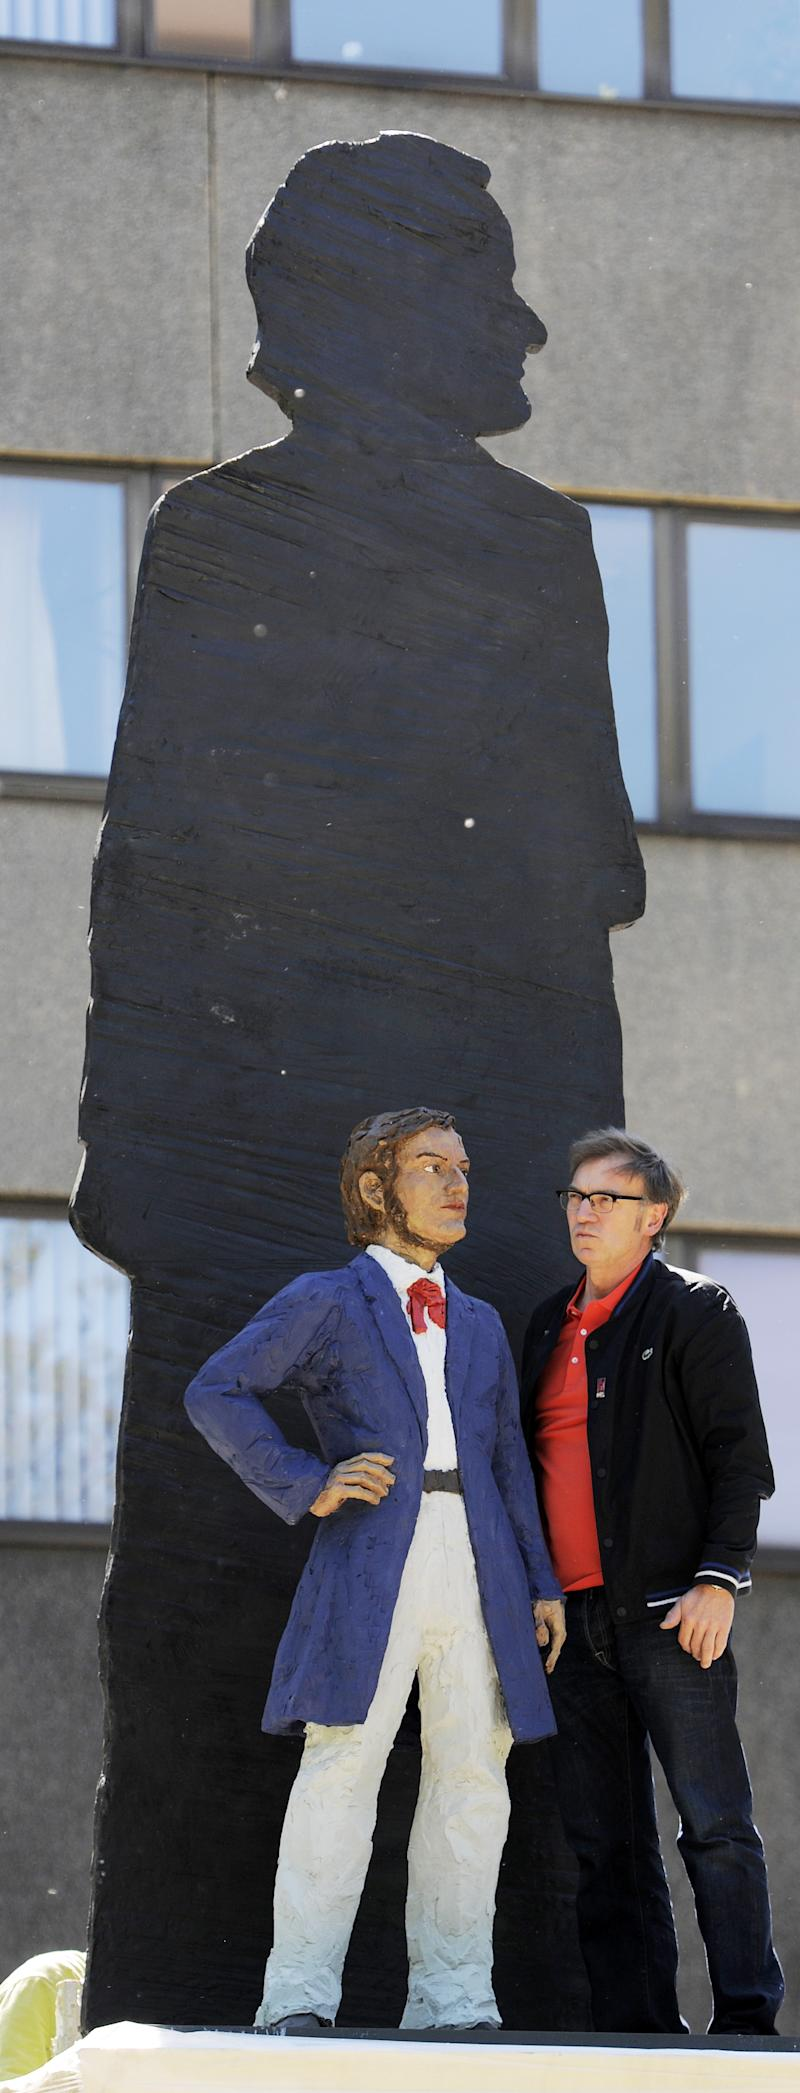 FILE - In this May 15, 2013 file photo German artist Stephan Balkenhol, right, stands besides a part of his Richard Wagner Monument during the installation in Leipzig, central Germany. The Wagner monument will be unveiled Wednesday, May 22, 2013, to celebrate the German composer's 200th birthday. It shows a young Wagner overshadowed by his older, famous self. Some of Wagner's works will be performed later in the day in Bayreuth, where the composer's descendants organize an annual music festival. (AP Photo/Jens Meyer, File)